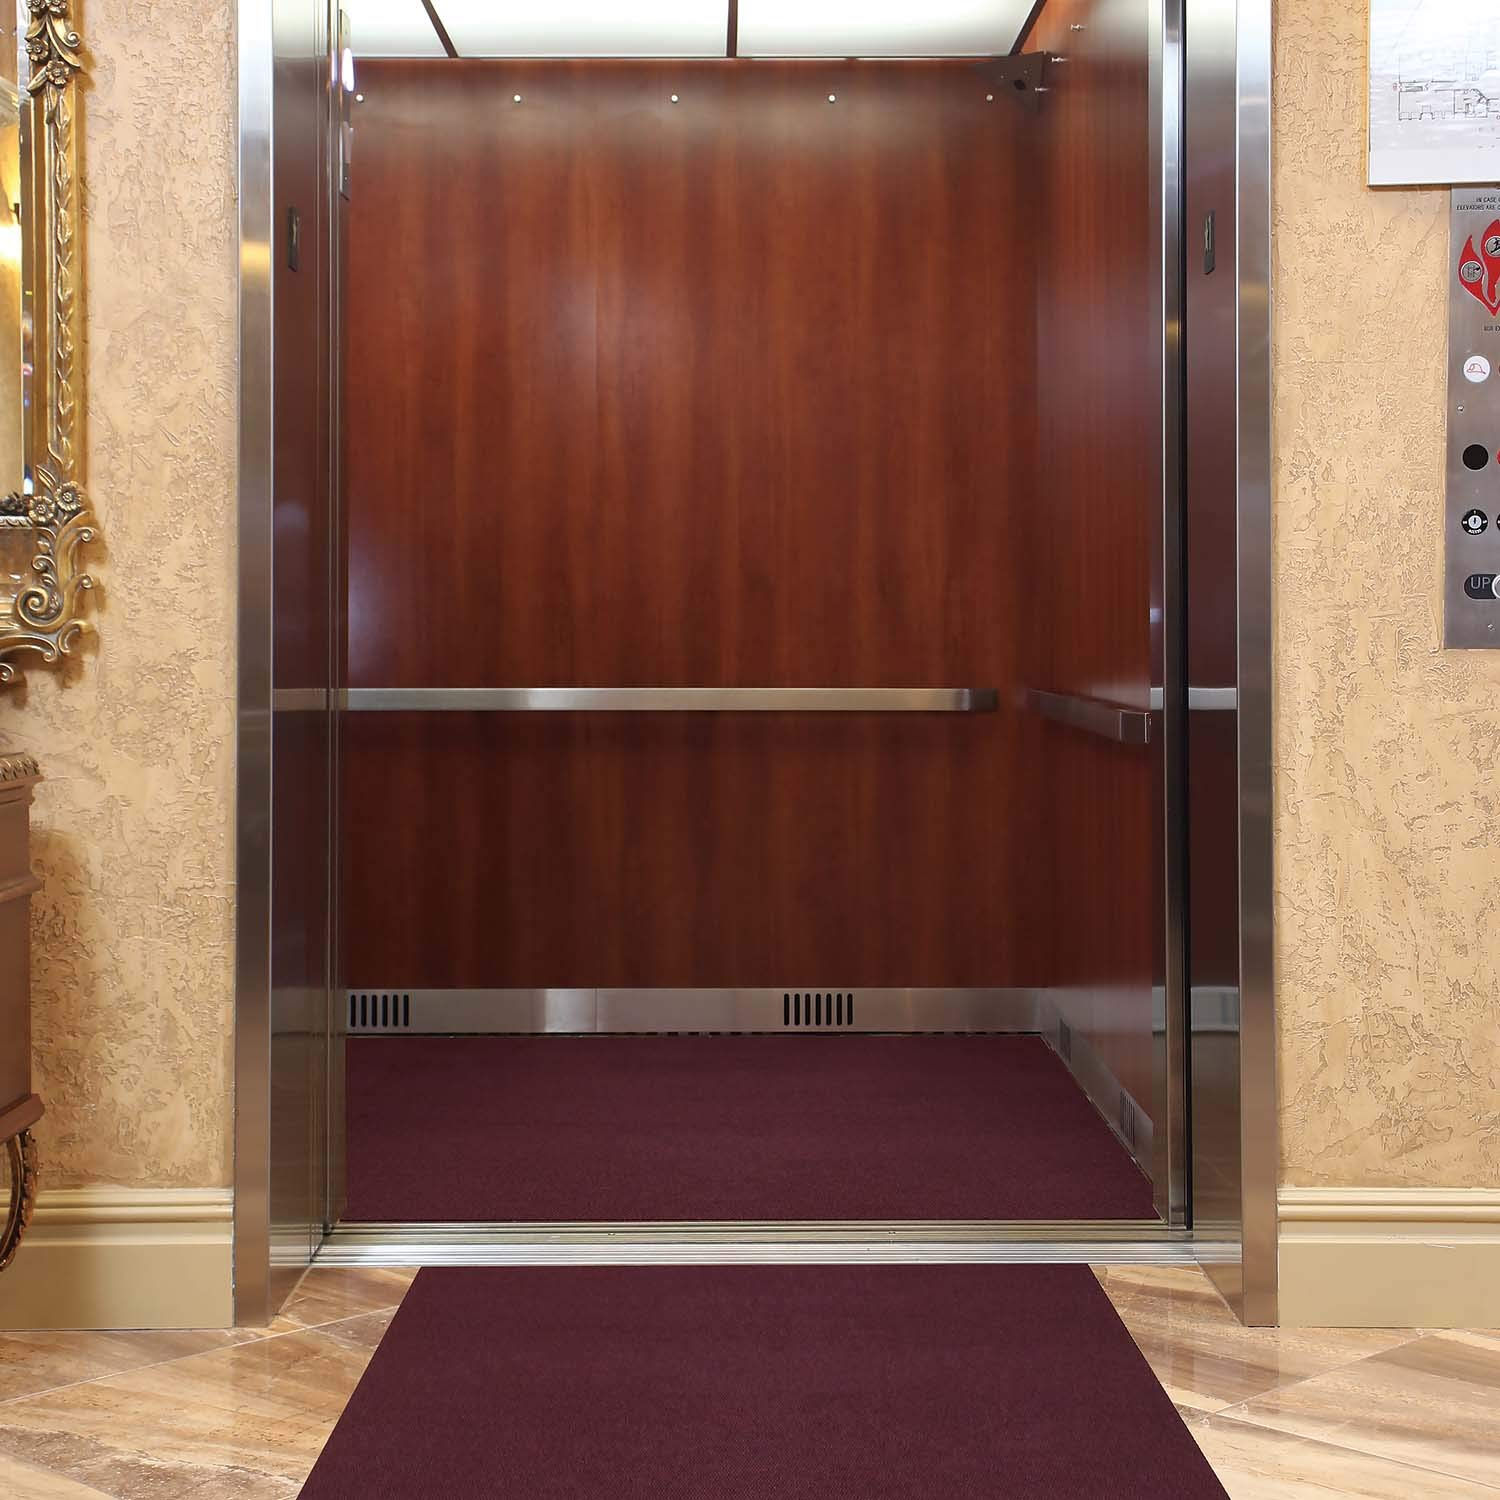 Elevator Mat by New Pig - 6' x 10' - Protect High Traffic Elevator Floors - Elevator Carpet Protects Floors from Wet Shoes